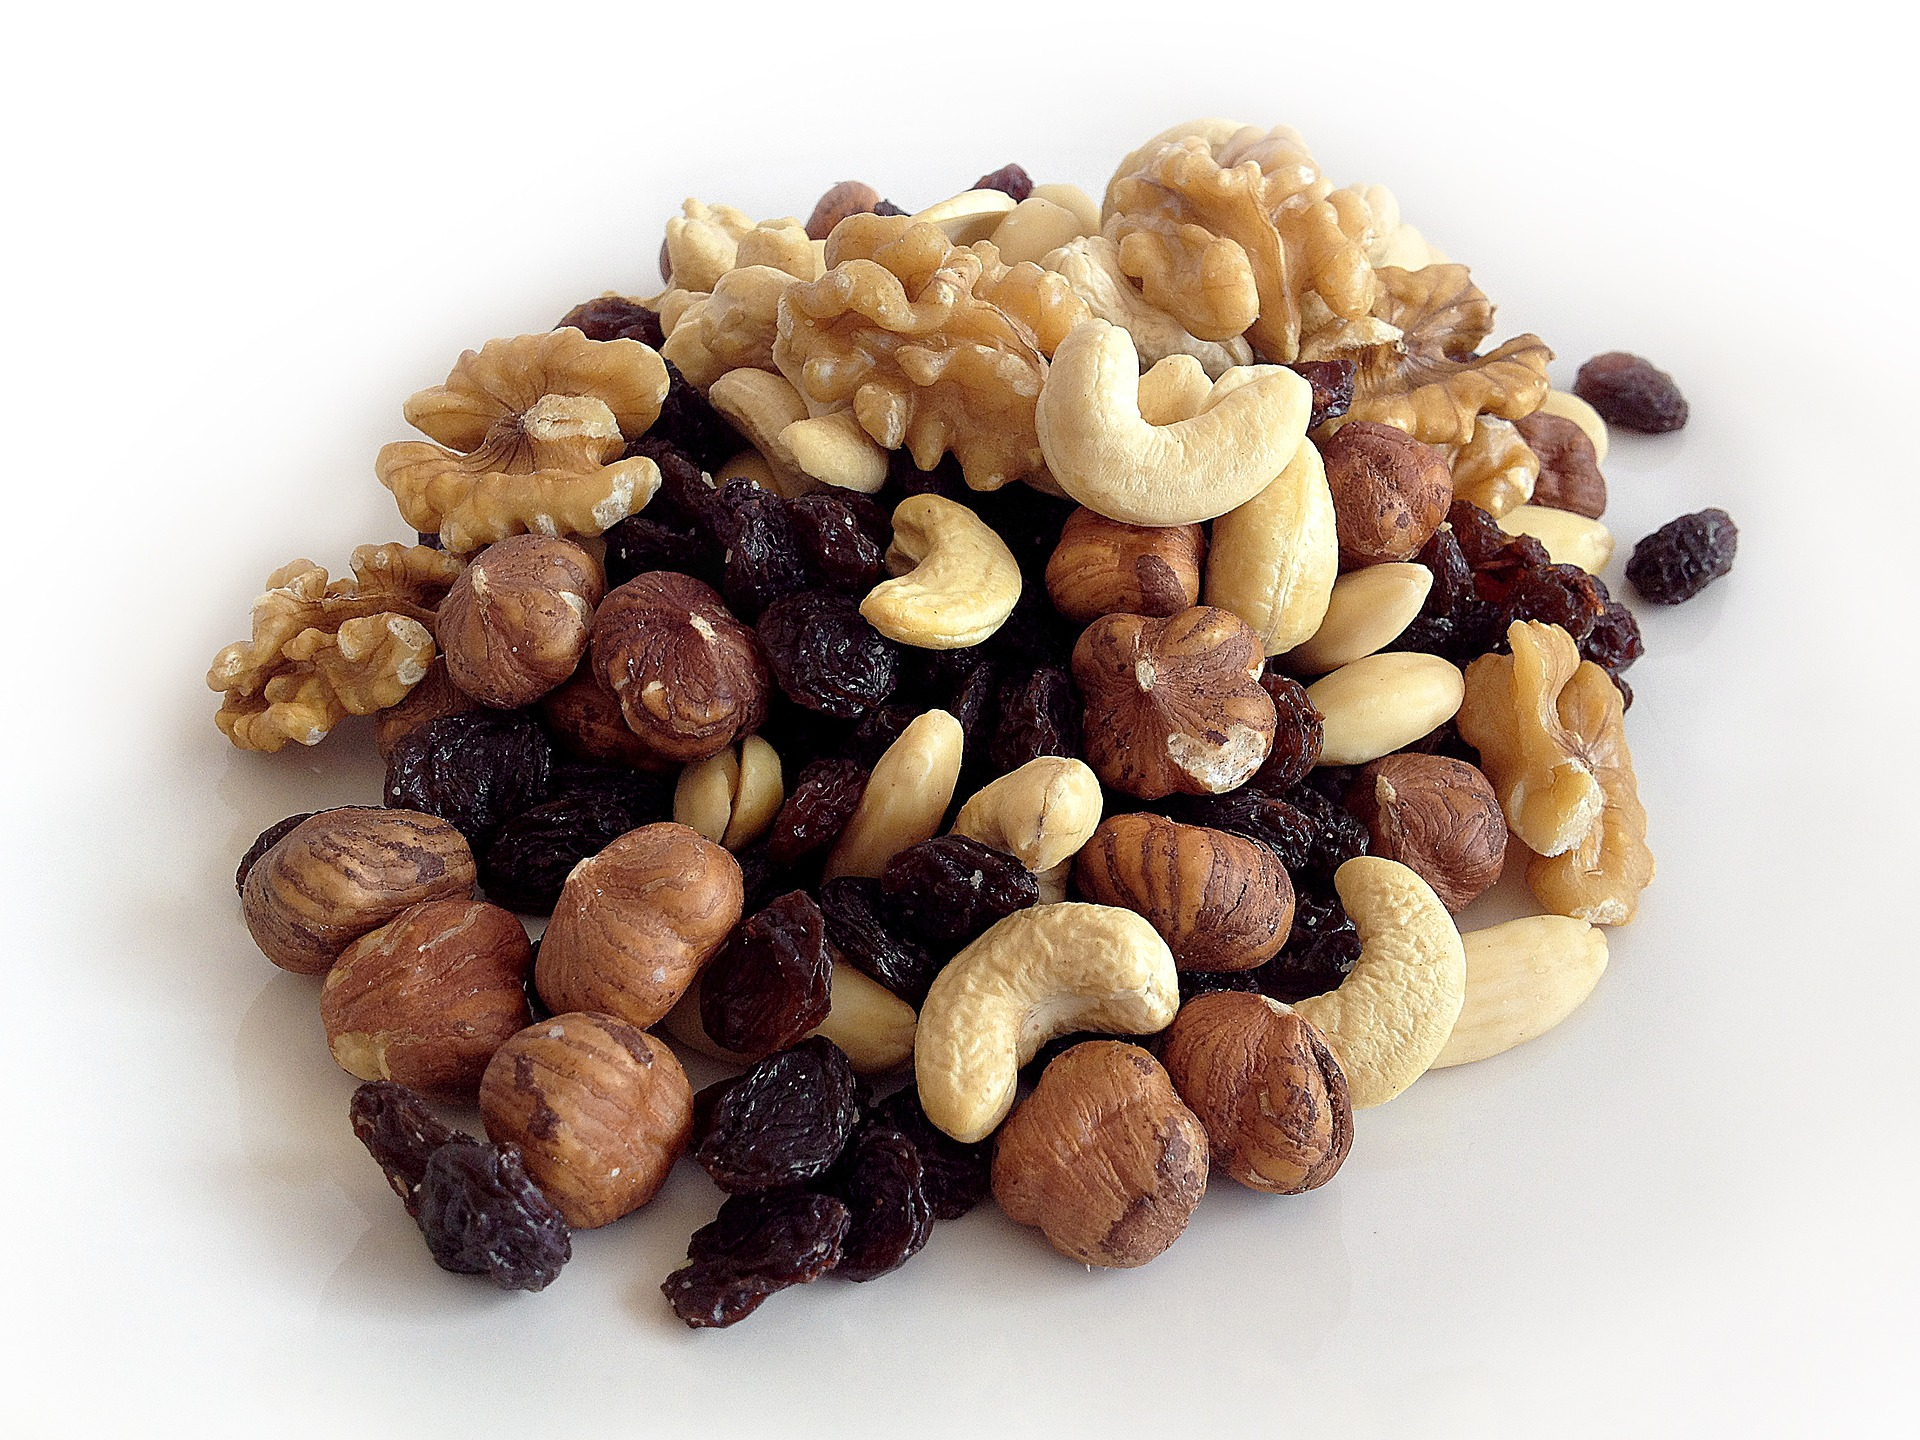 Study Suggests Nut Consumption May Lower Colon Cancer Risk